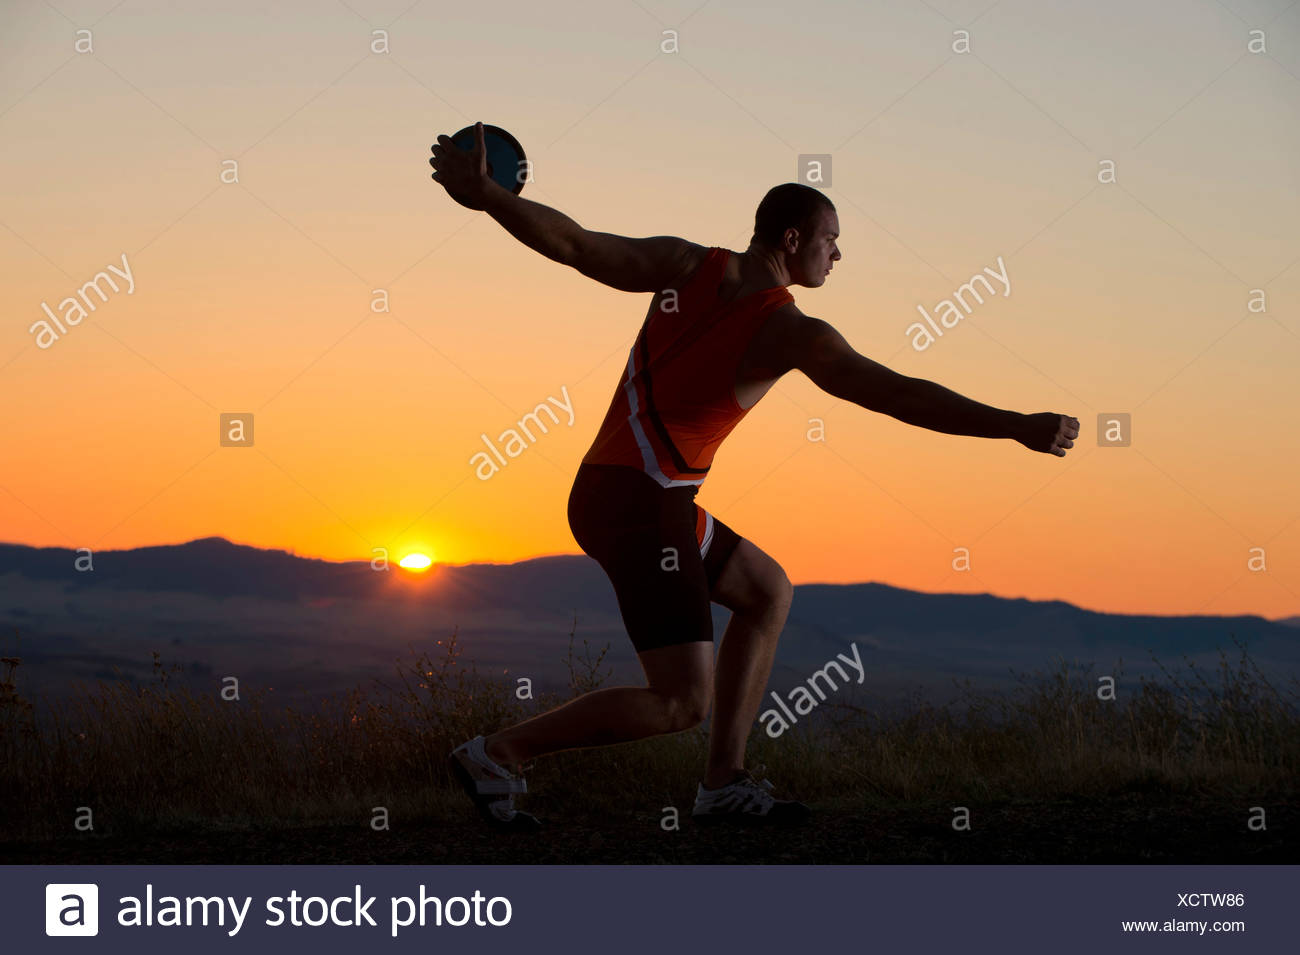 Young man preparing to throw discus at sunset - Stock Image